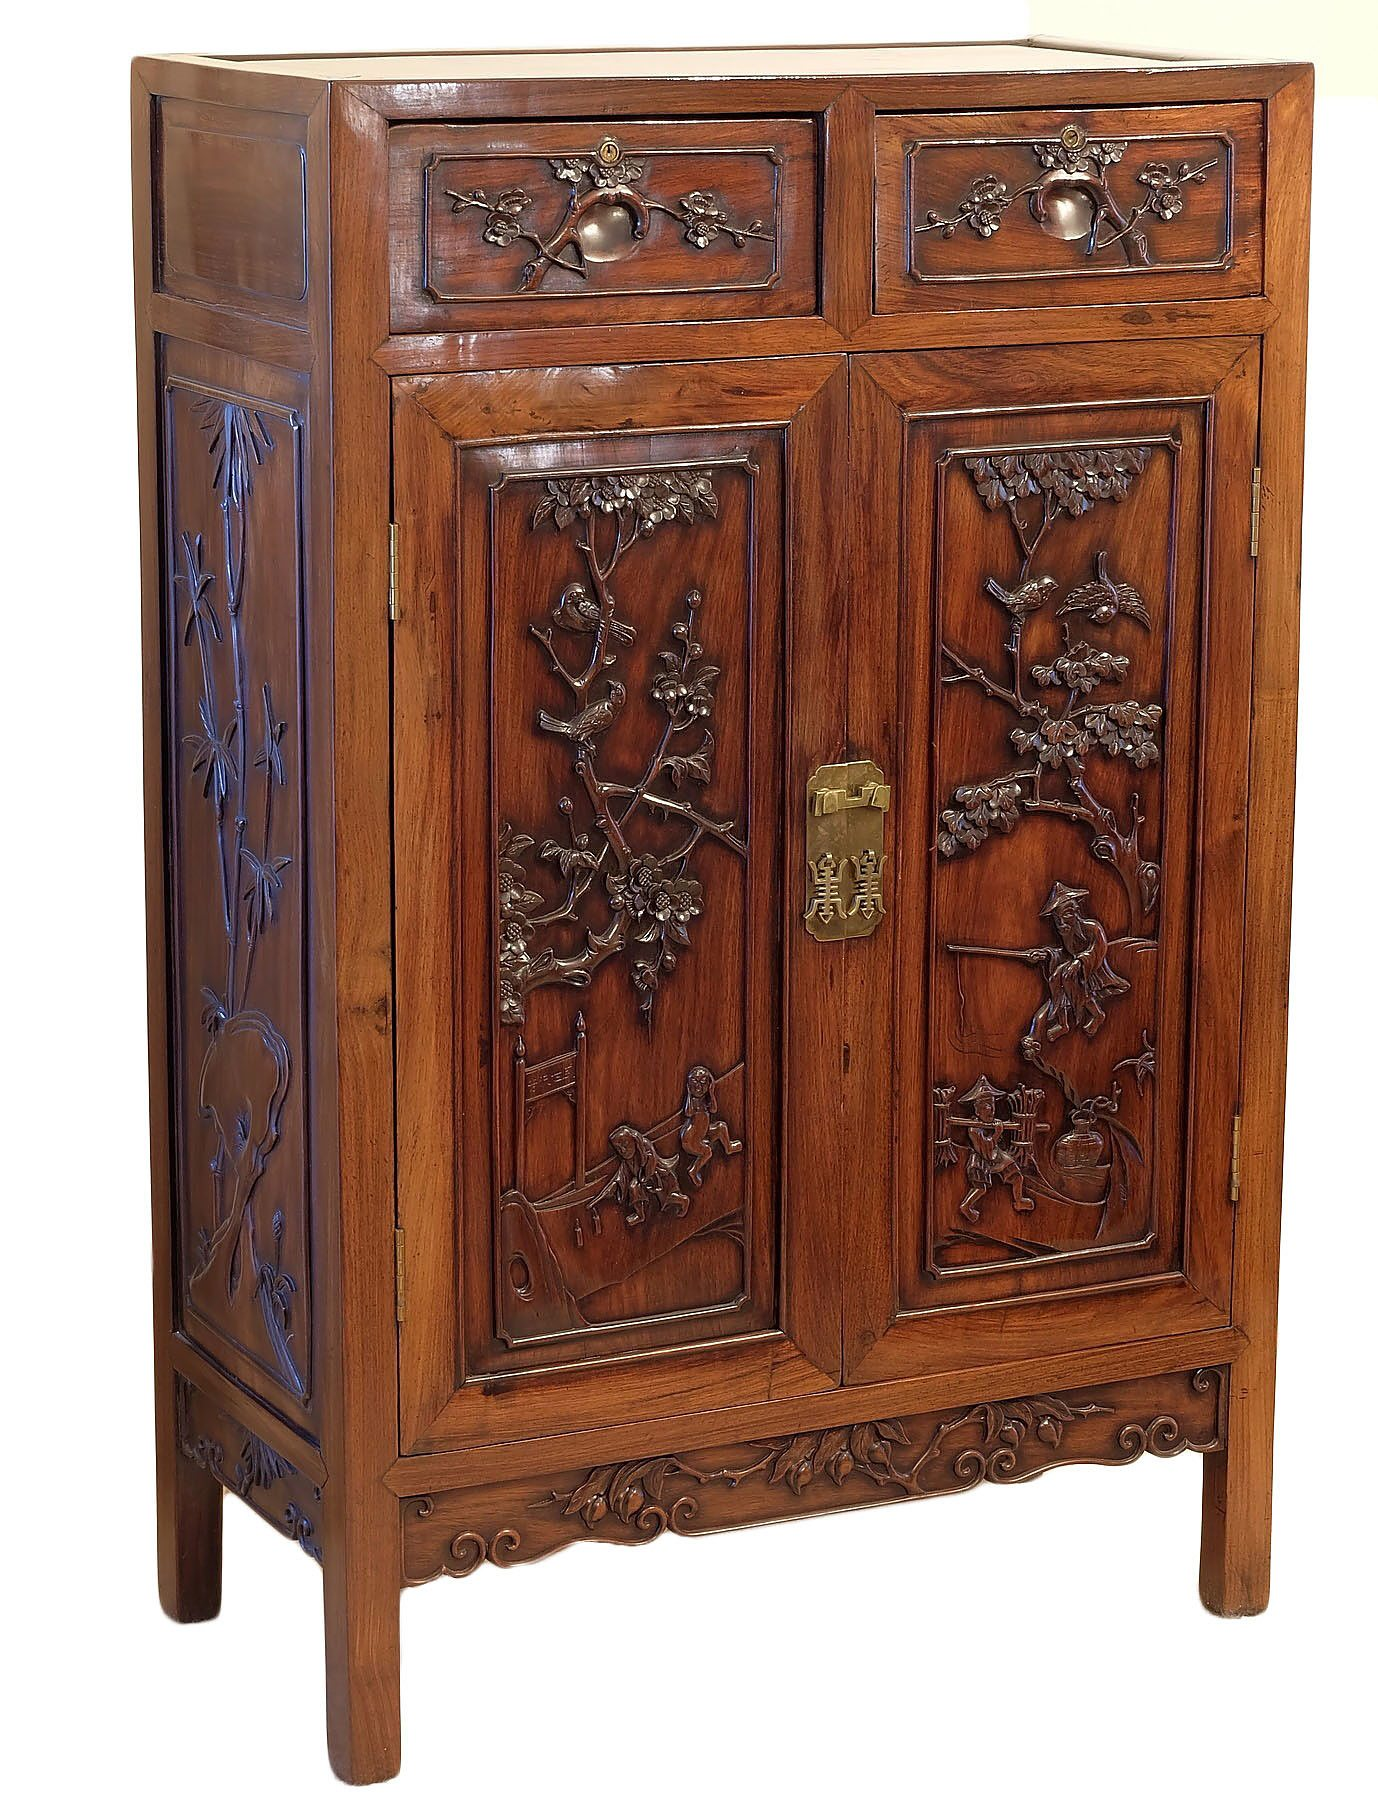 'Good Antique Chinese Hongmu Rosewood Cabinet Early 20th Century'